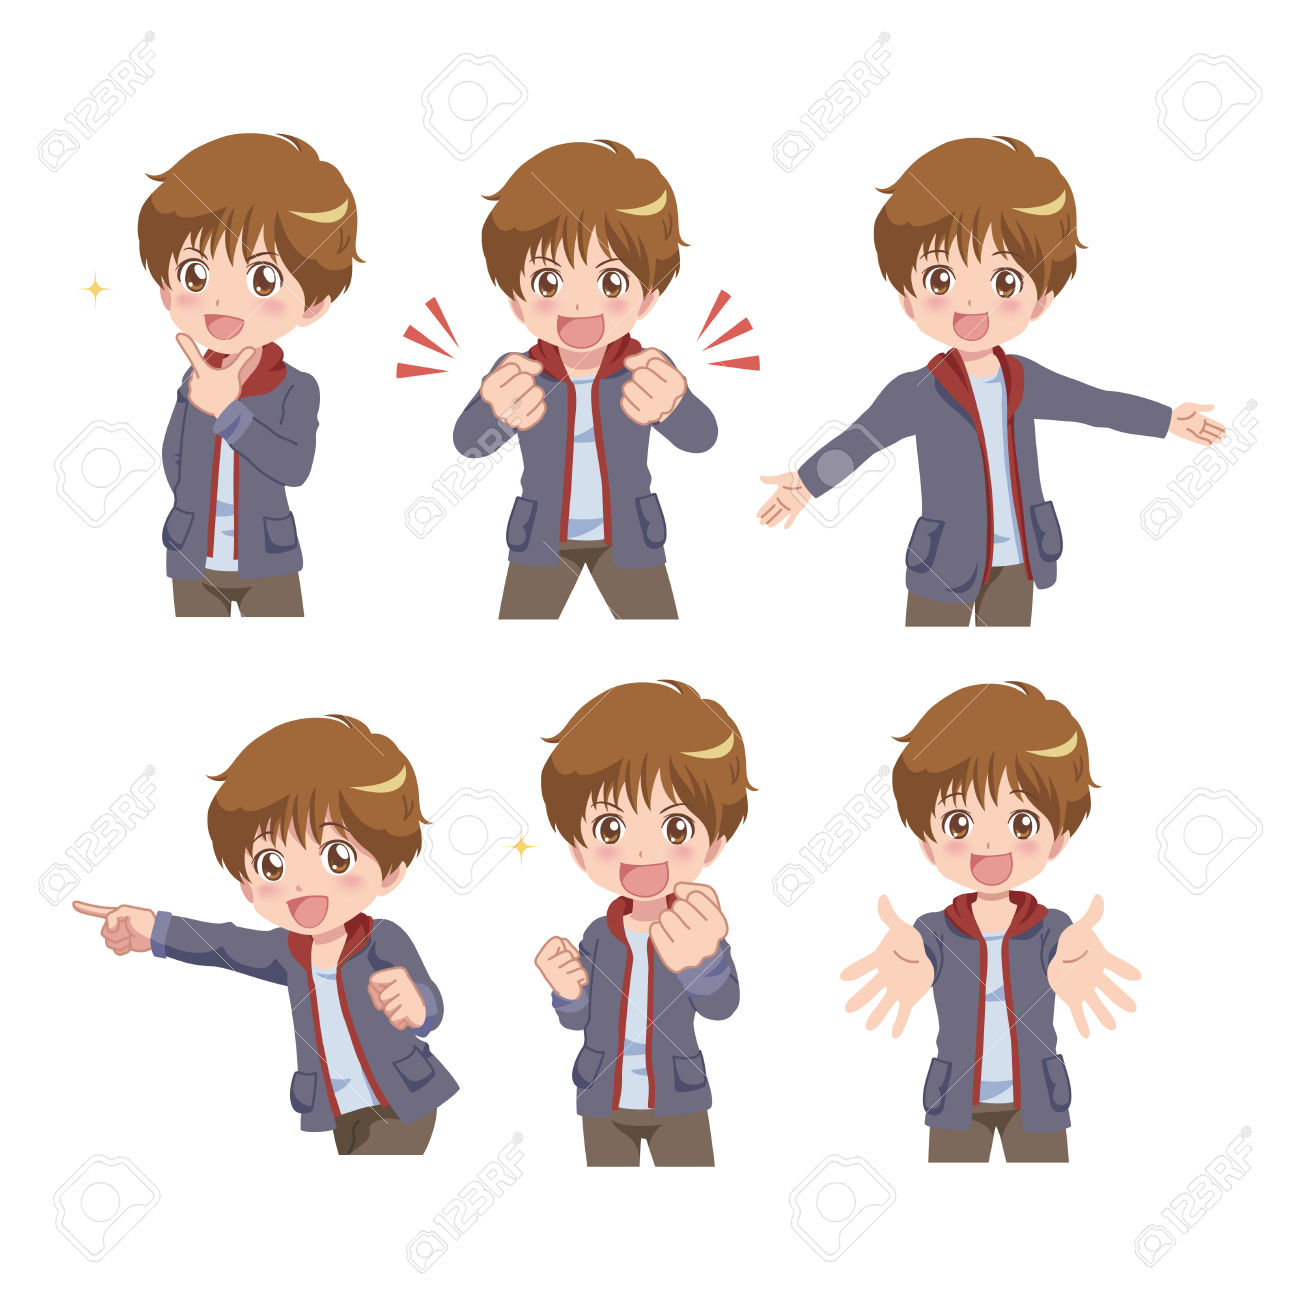 Manga Styled Boy With Multiple Poses Royalty Free Cliparts.